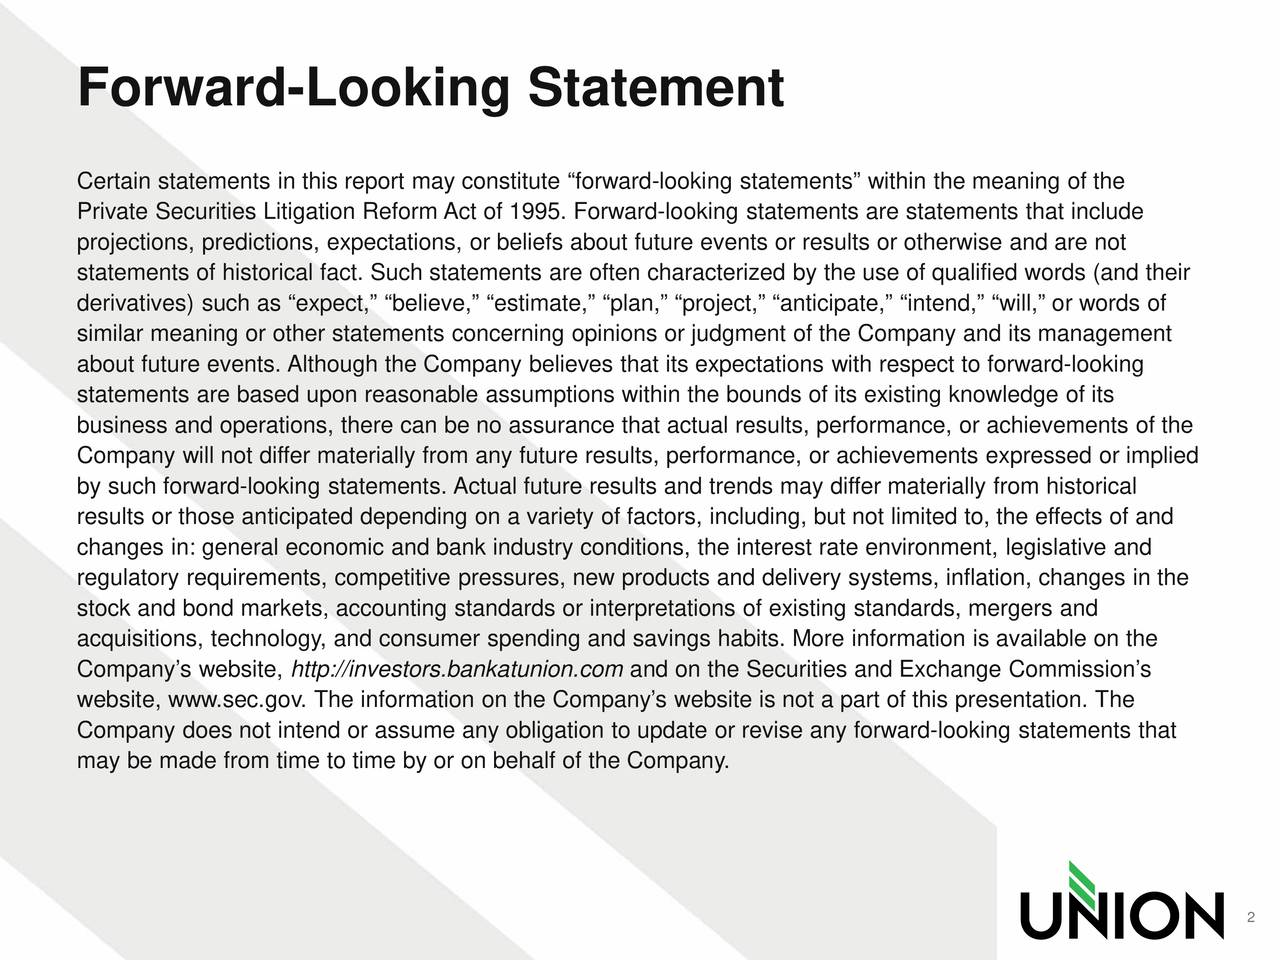 Certain statements in this report may constitute forward-looking statements within the meaning of the Private Securities Litigation Reform Act of 1995. Forward-looking statements are statements that include projections, predictions, expectations, or beliefs about future events or results or otherwise and are not statements of historical fact. Such statements are often characterized by the use of qualified words (and their derivatives) such as expect, believe, estimate, plan, project, anticipate, intend, will, or words of similar meaning or other statements concerning opinions or judgment of the Company and its management about future events. Although the Company believes that its expectations with respect to forward-looking statements are based upon reasonable assumptions within the bounds of its existing knowledge of its business and operations, there can be no assurance that actual results, performance, or achievements of the Company will not differ materially from any future results, performance, or achievements expressed or implied by such forward-looking statements. Actual future results and trends may differ materially from historical results or those anticipated depending on a variety of factors, including, but not limited to, the effects of and changes in: general economic and bank industry conditions, the interest rate environment, legislative and regulatory requirements, competitive pressures, new products and delivery systems, inflation, changes in the stock and bond markets, accounting standards or interpretations of existing standards, mergers and acquisitions, technology, and consumer spending and savings habits. More information is available on the Companys website, http://investors.bankatunion.com and on the Securities and Exchange Commissions website, www.sec.gov. The information on the Companys website is not a part of this presentation. The Company does not intend or assume any obligation to update or revise any forward-looking statements that may